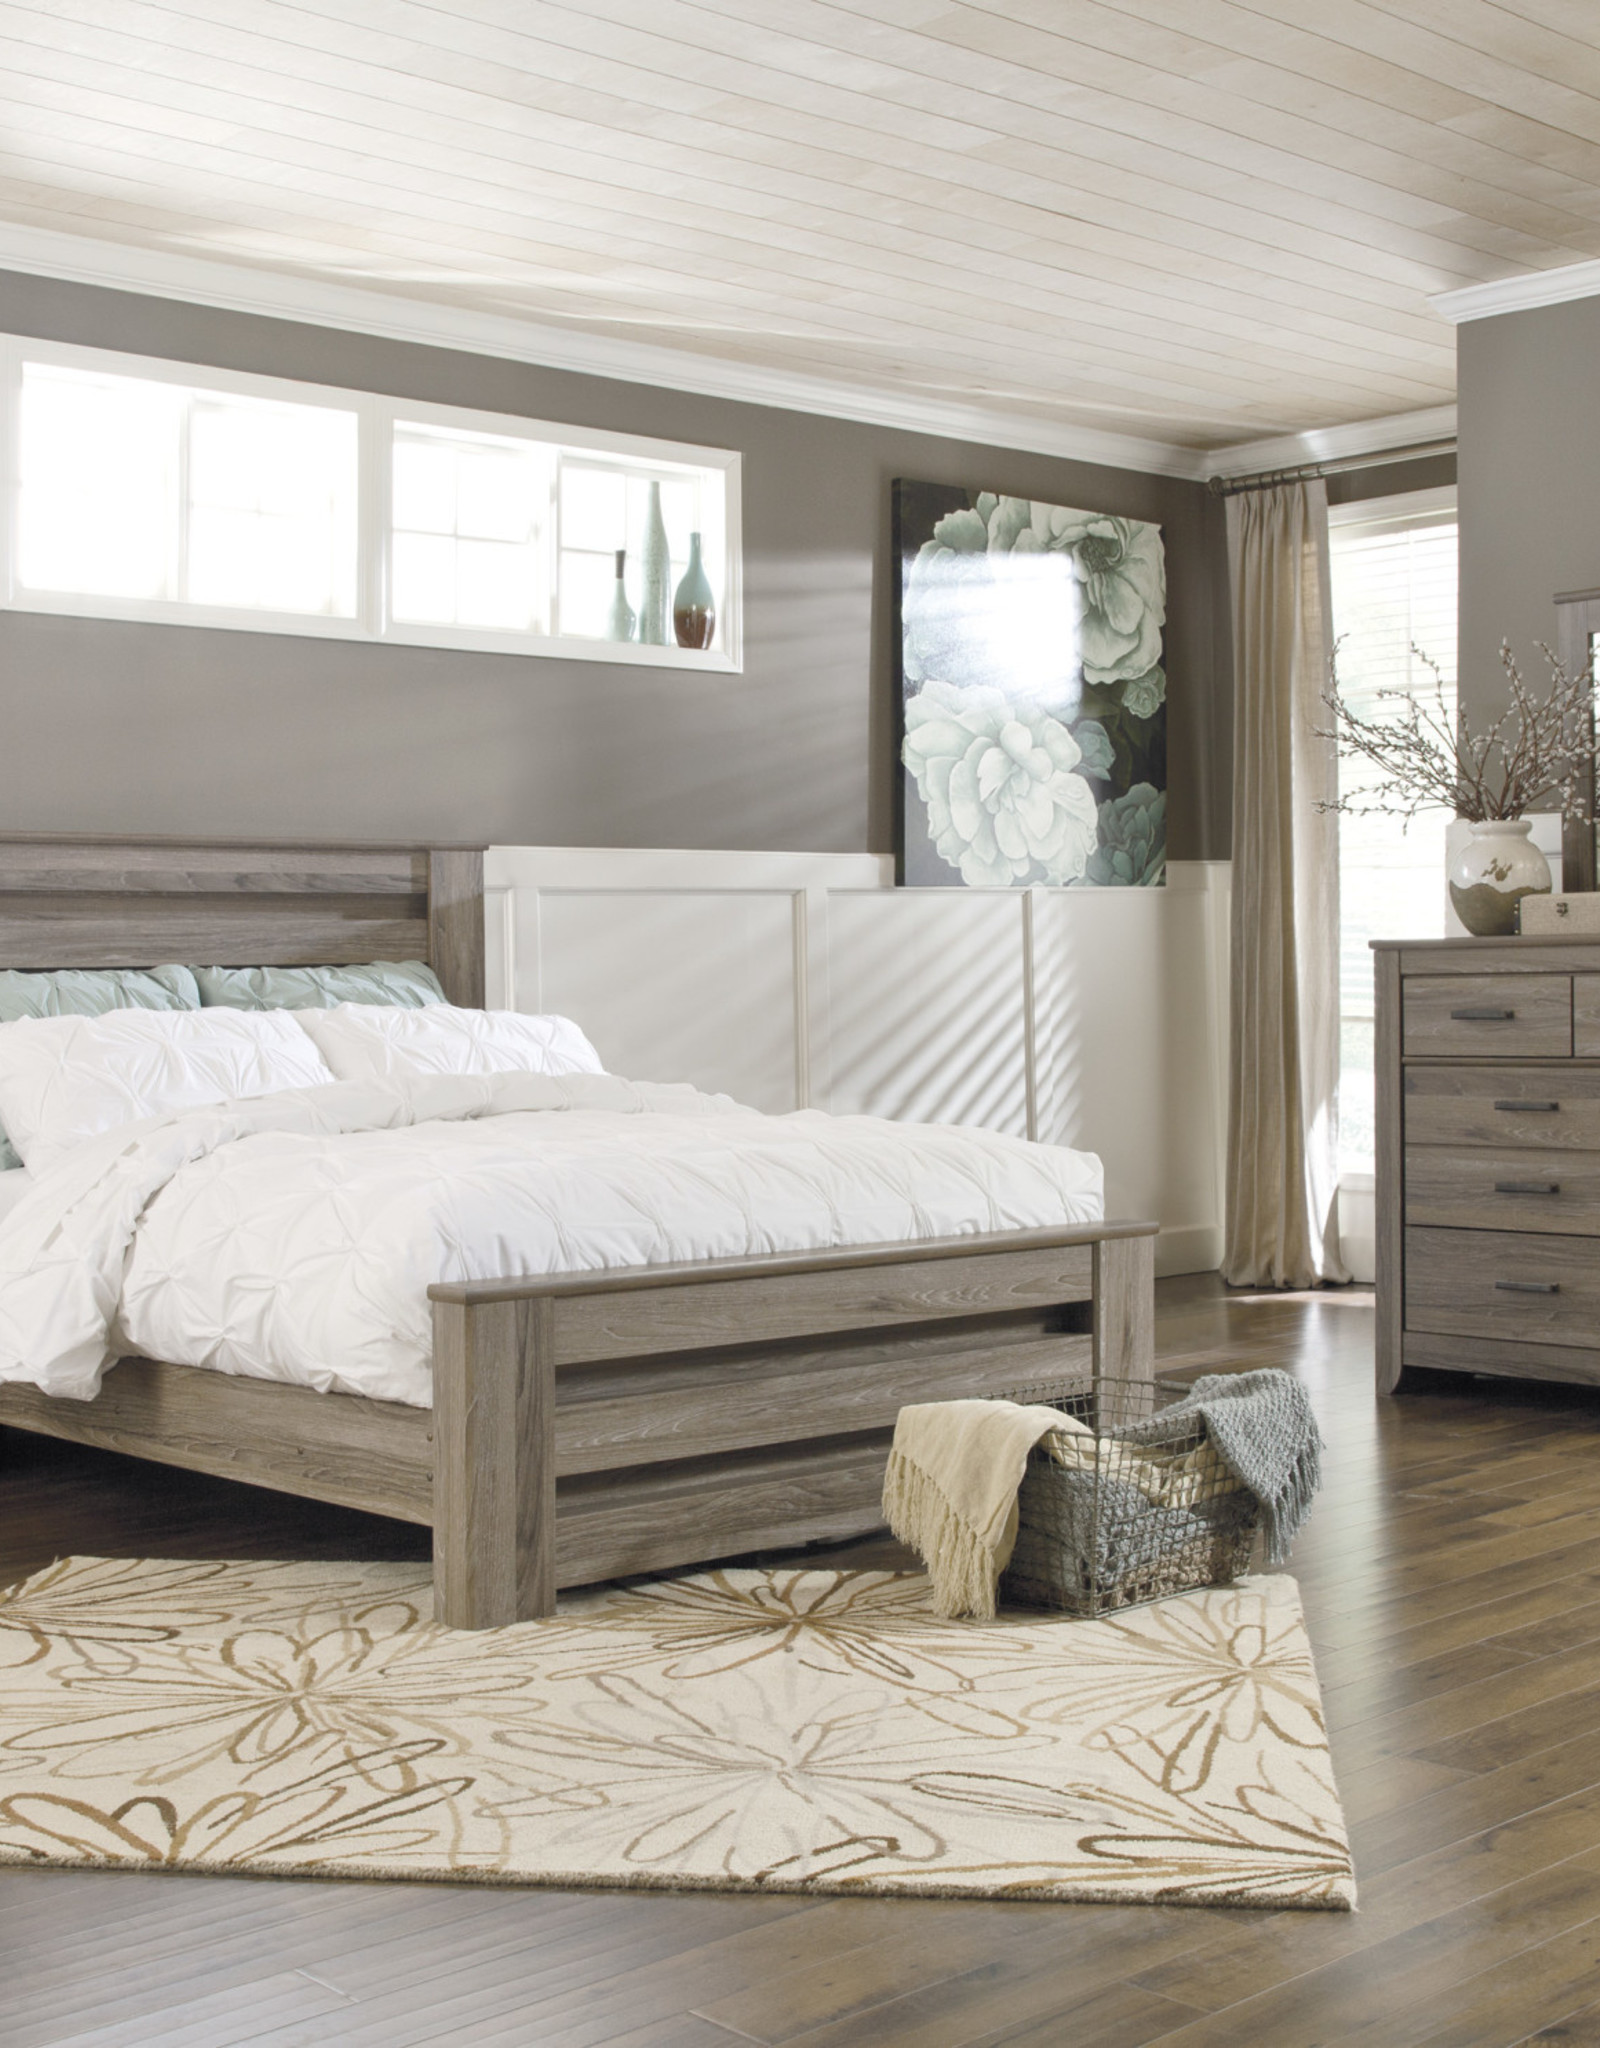 Zelen Bed (Includes headboard, footboard, and rails)